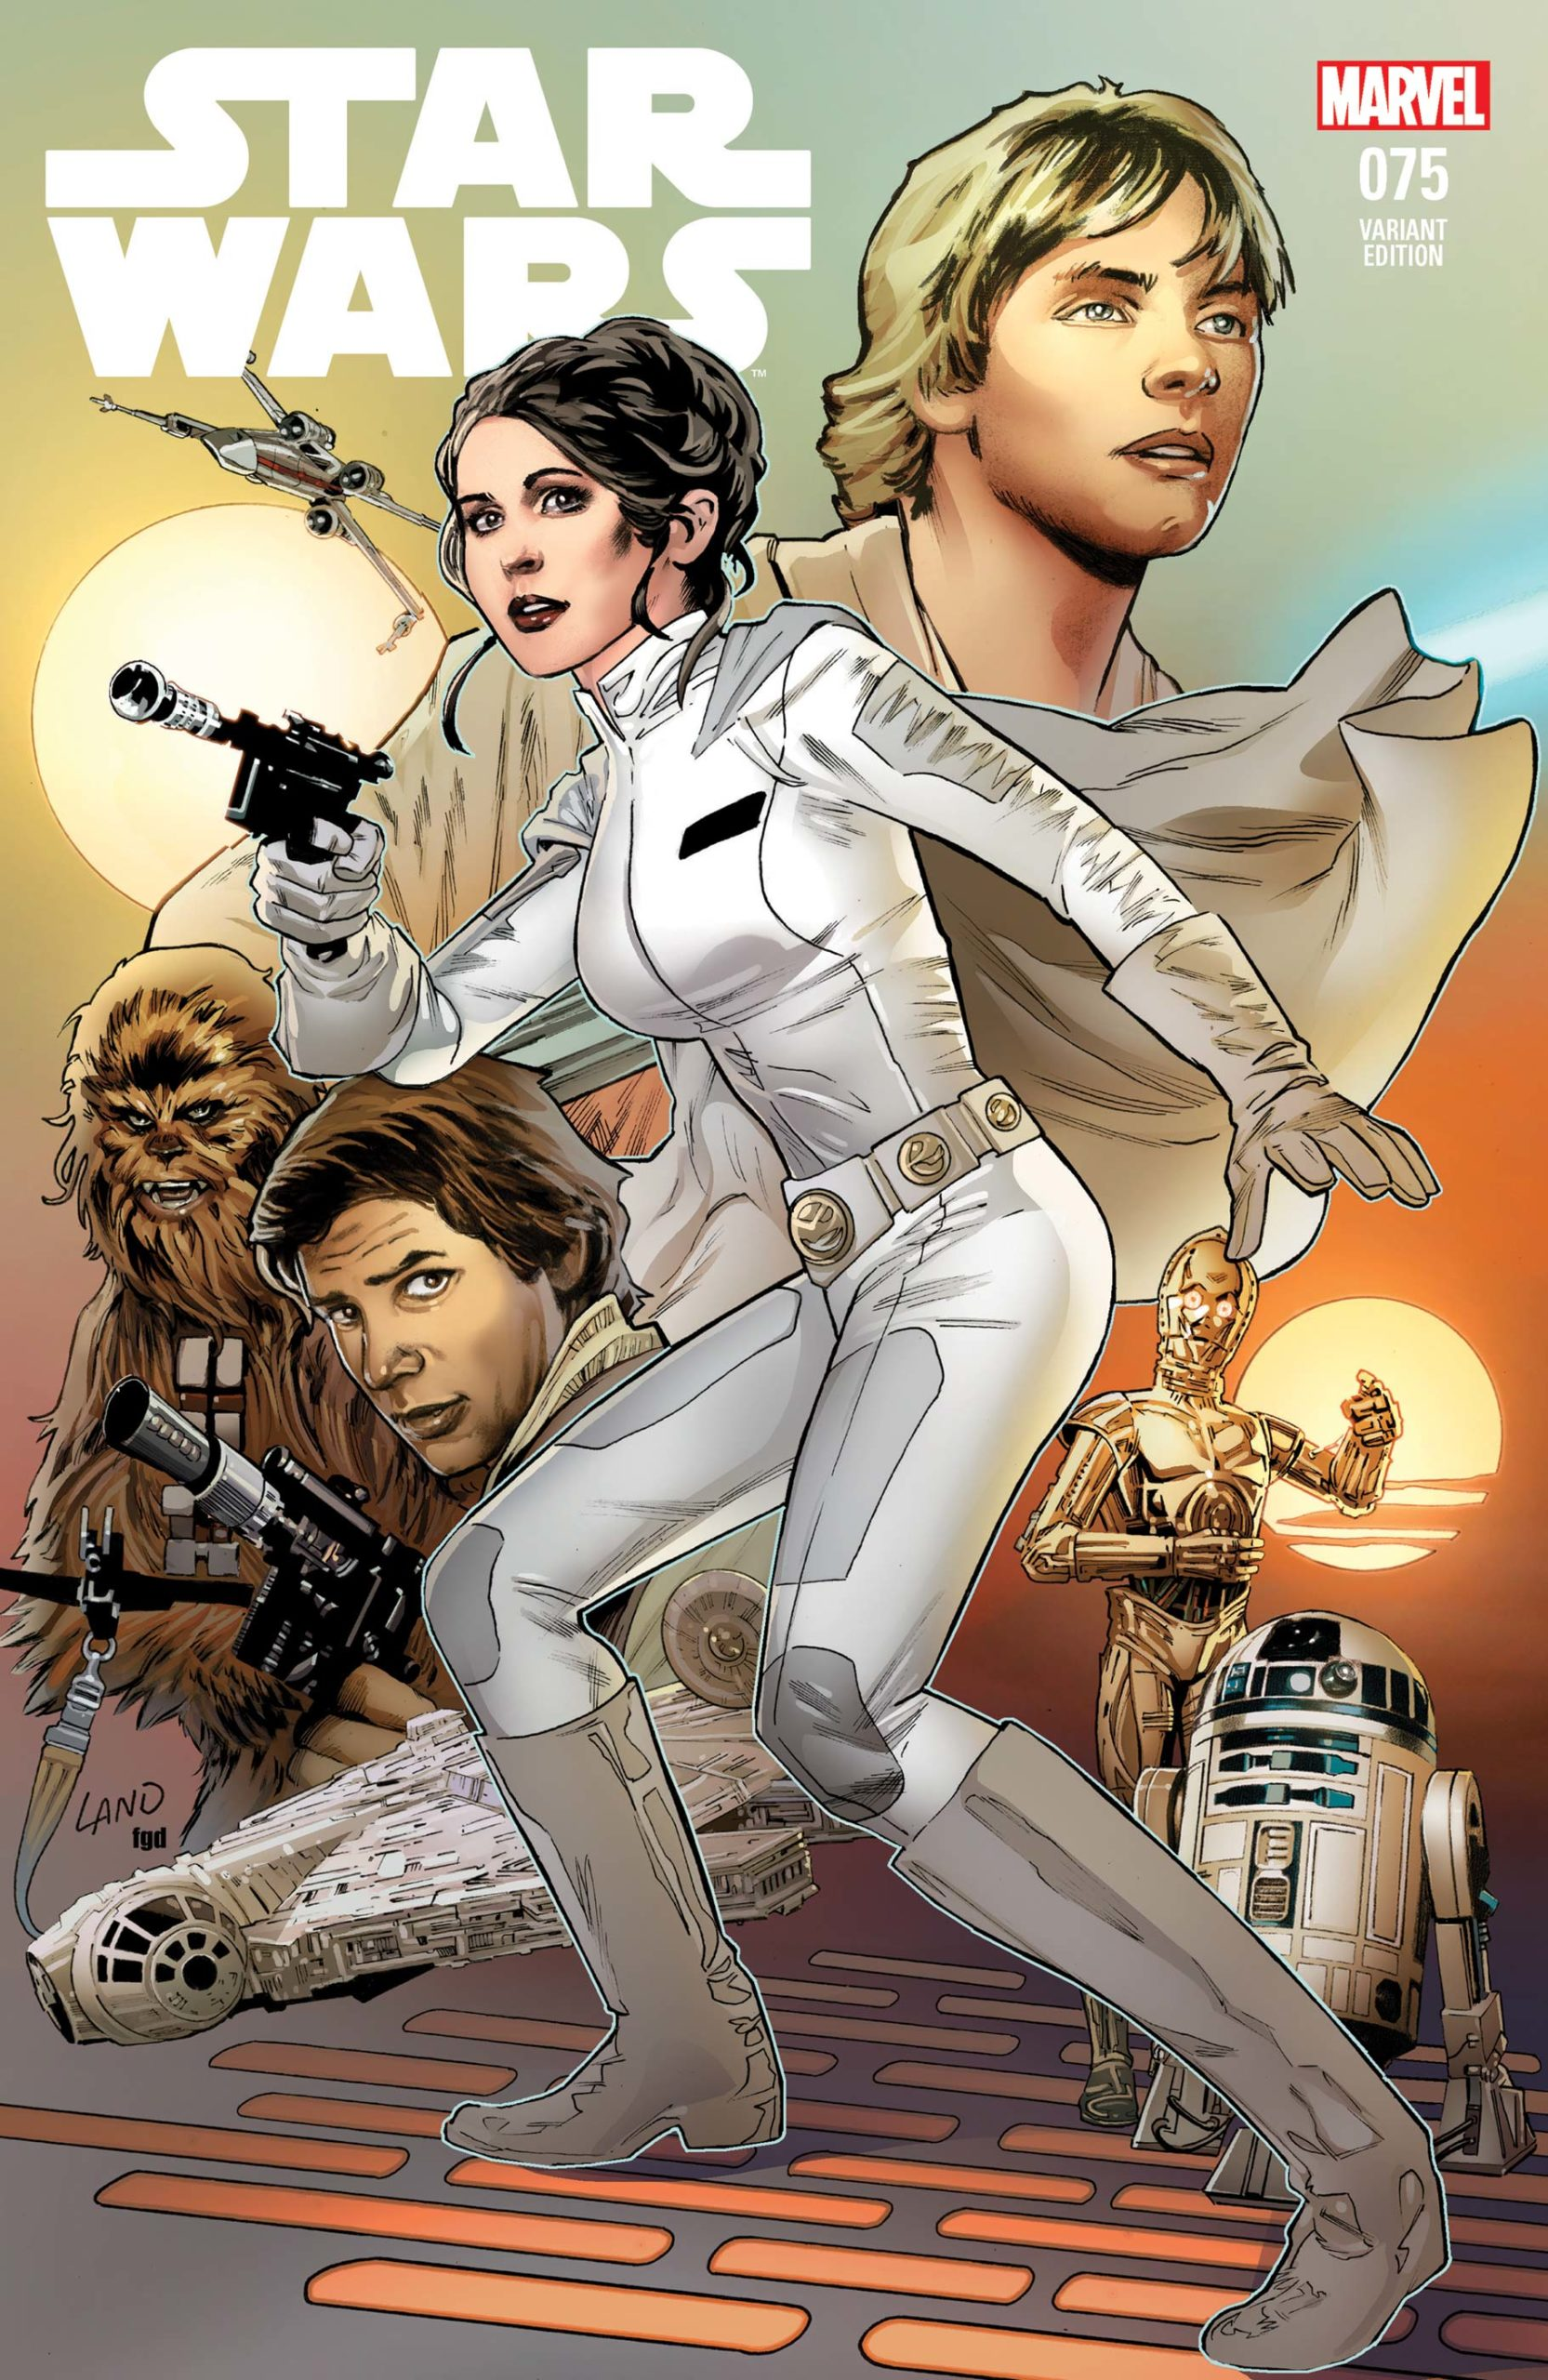 Star Wars #75 (Greg Land Variant Cover) (20.11.2019)